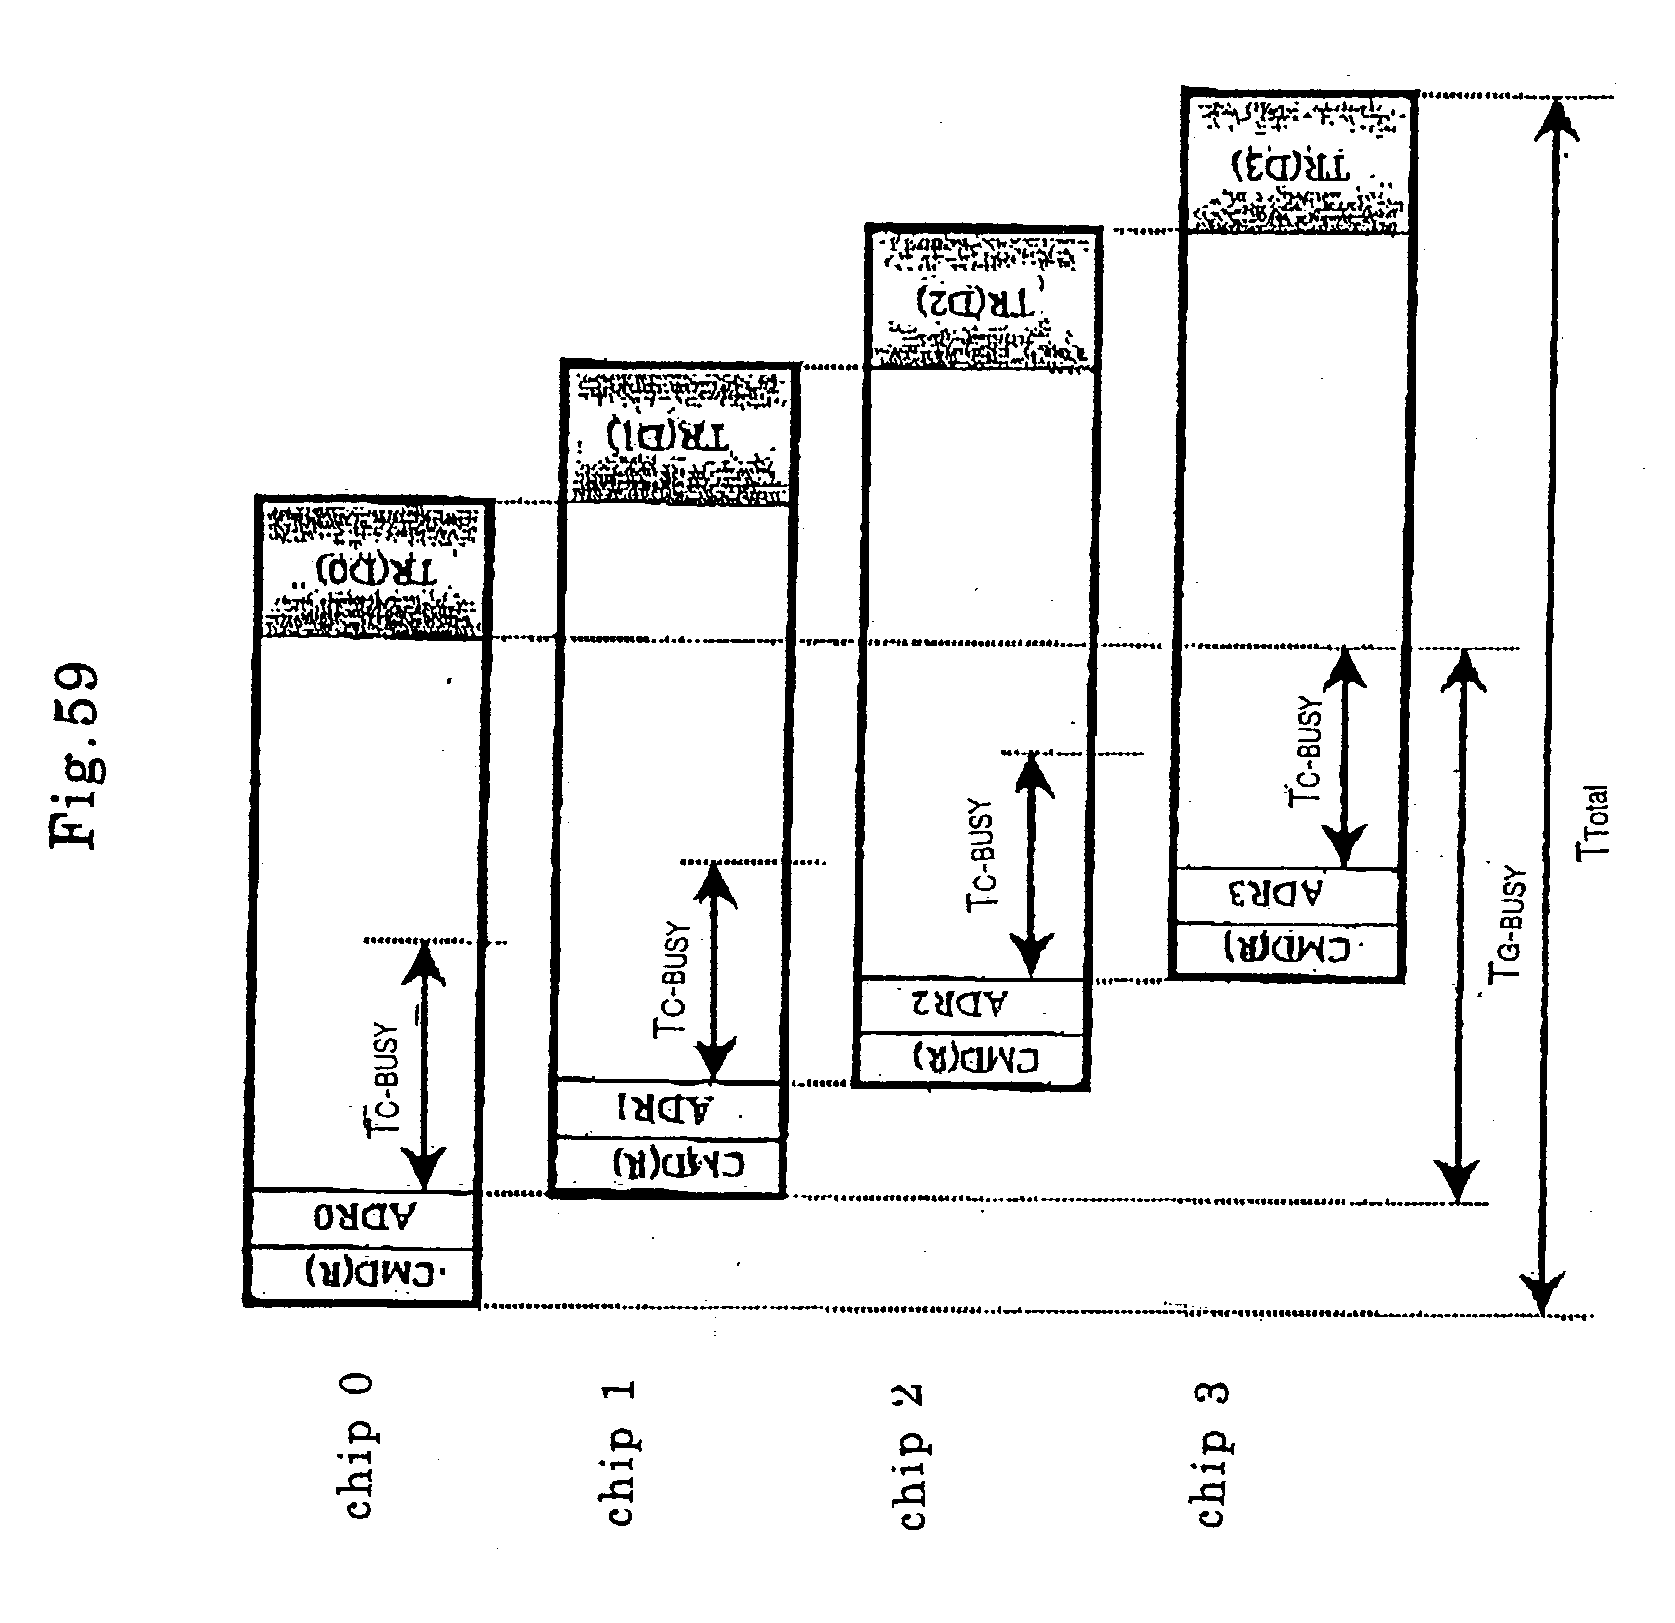 non volatile memory chips This chapter addresses trends and challenges in the development of on-chip (embedded) non-volatile memory (nvm) for ultra-low power operation various nvm technologies have been introduced, including flash, otp/mtp, resistive ram, and phase-change memory (pcm) in the following, we examine some of .